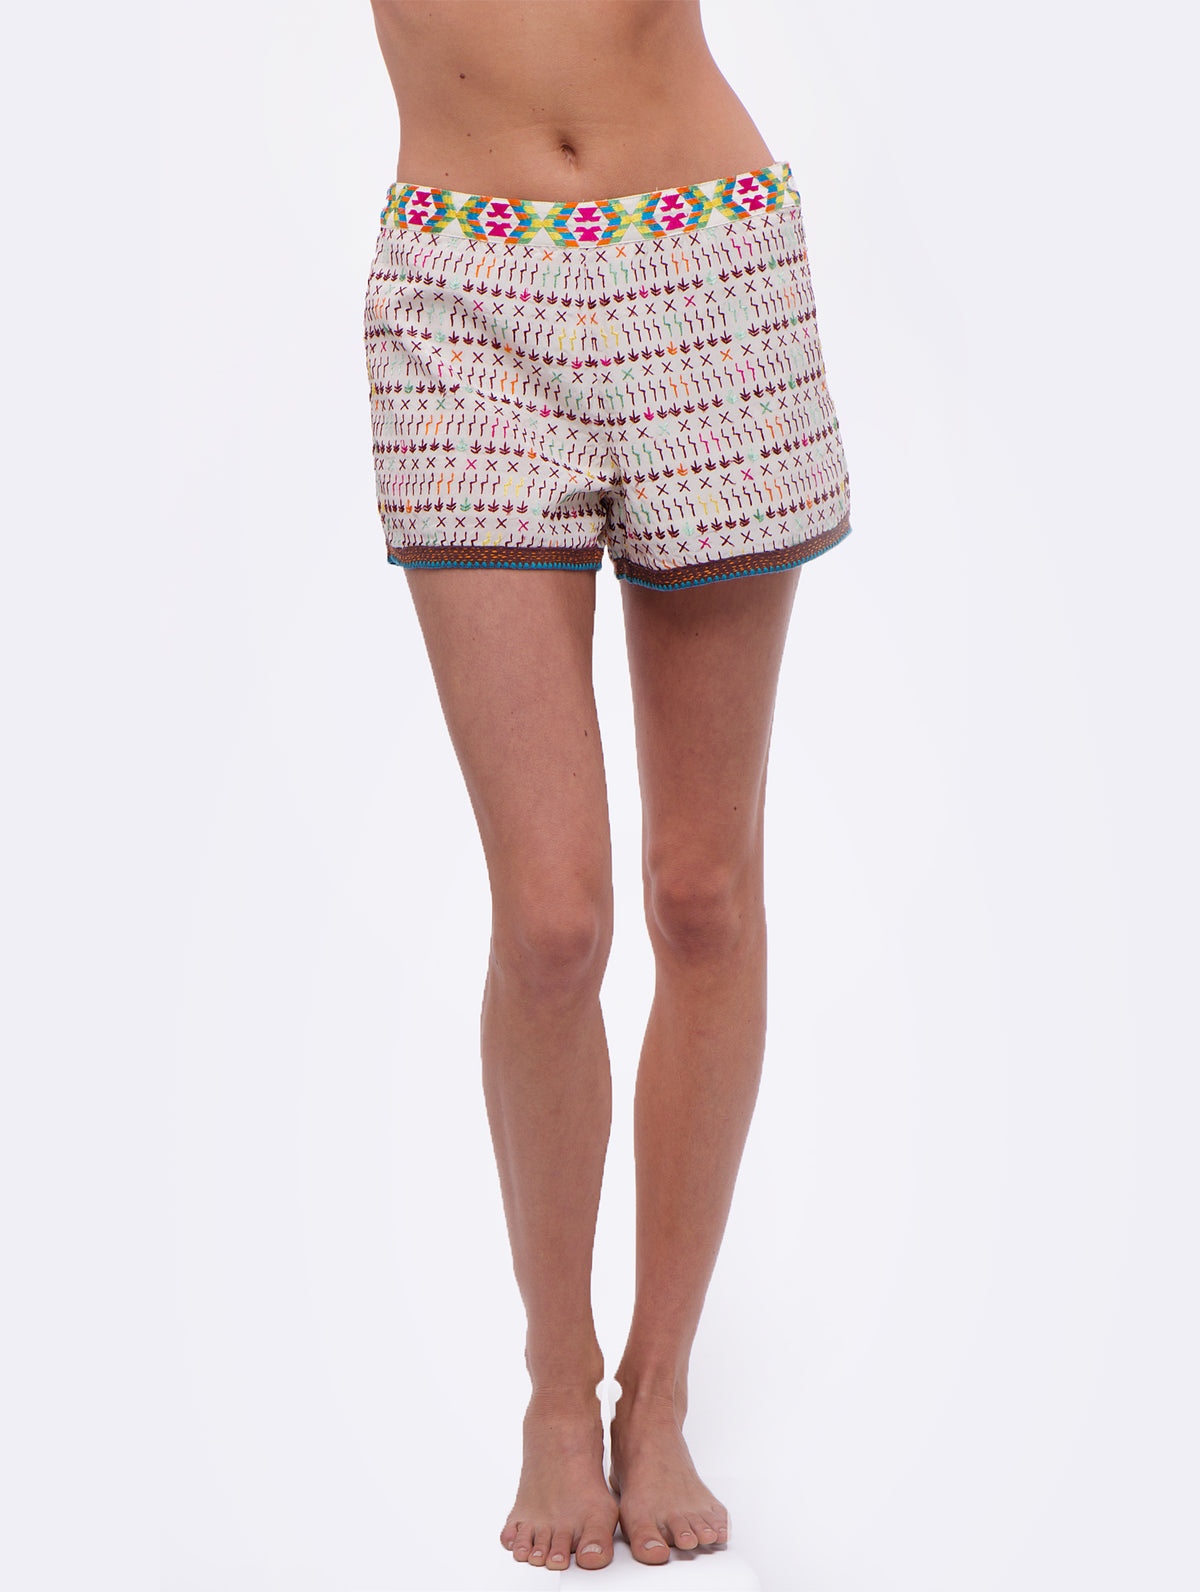 Love Sam Imari Yucatec Embroidered Shorts